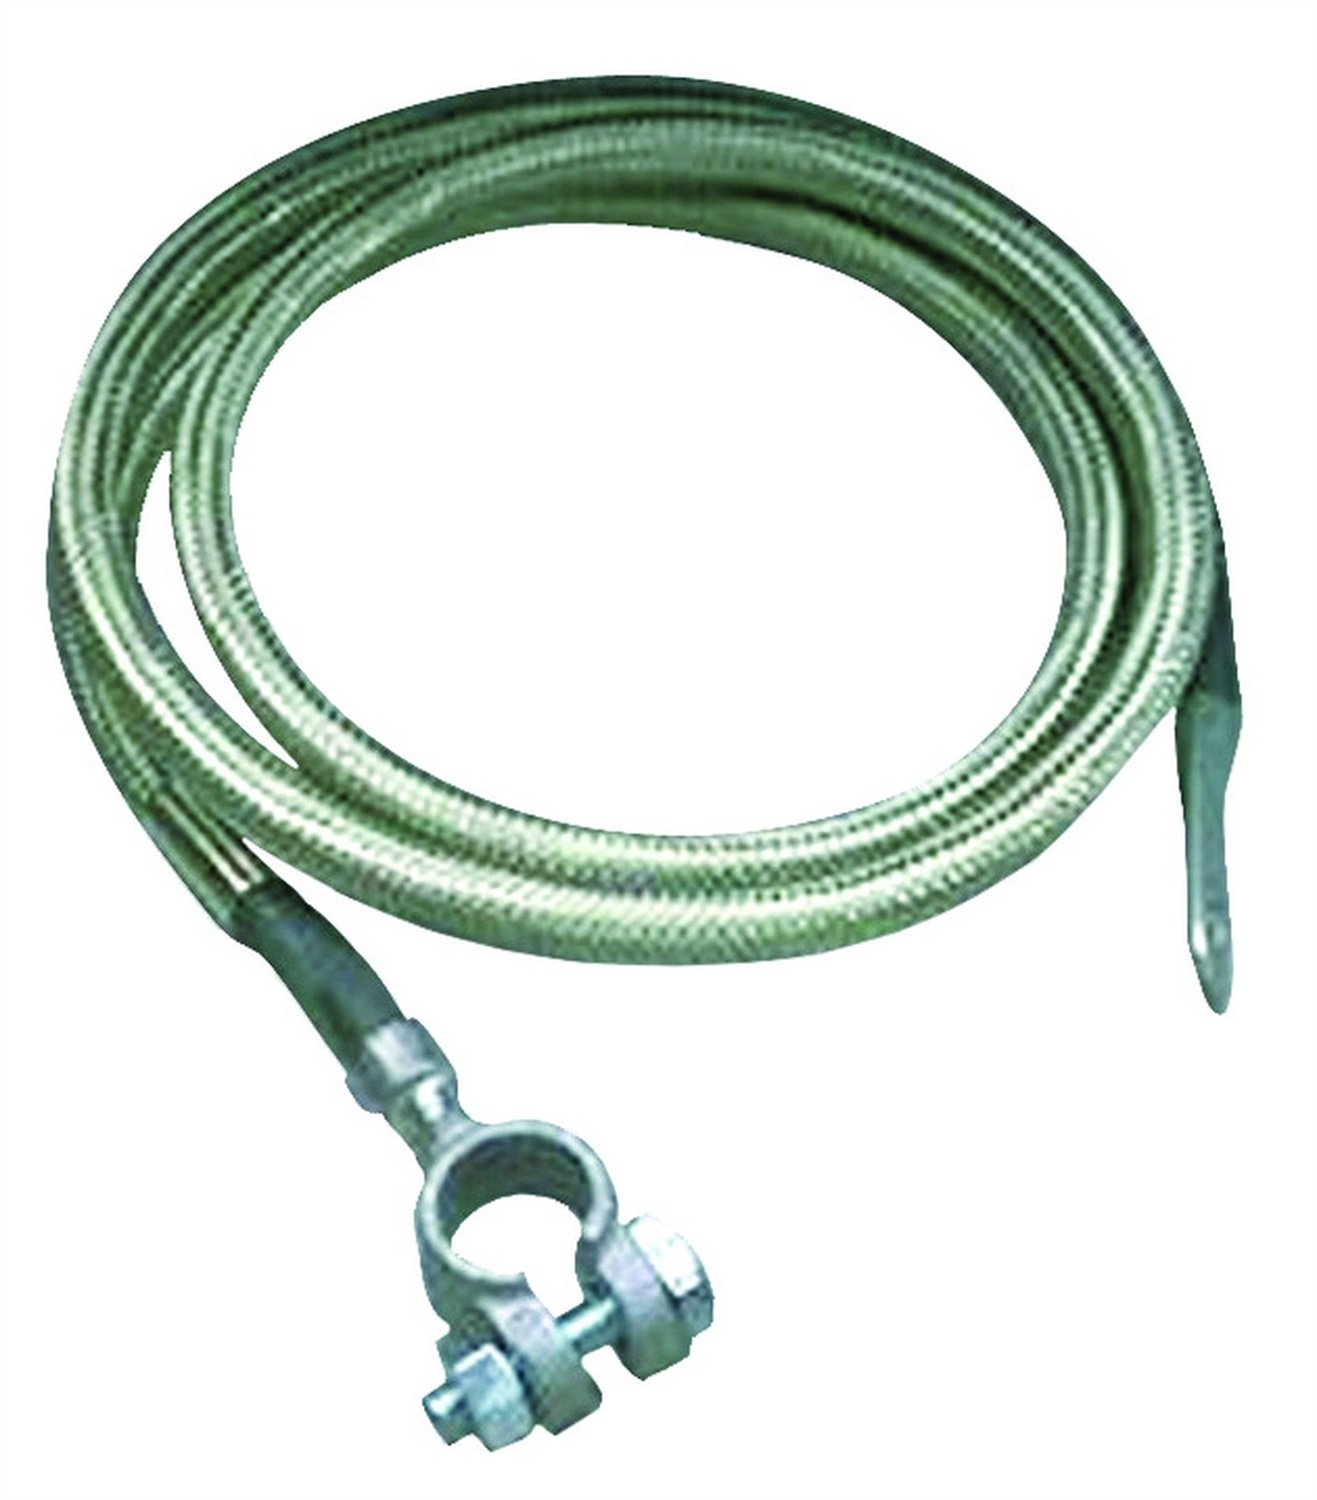 taylor 20031 31'' Top Post Battery Cable